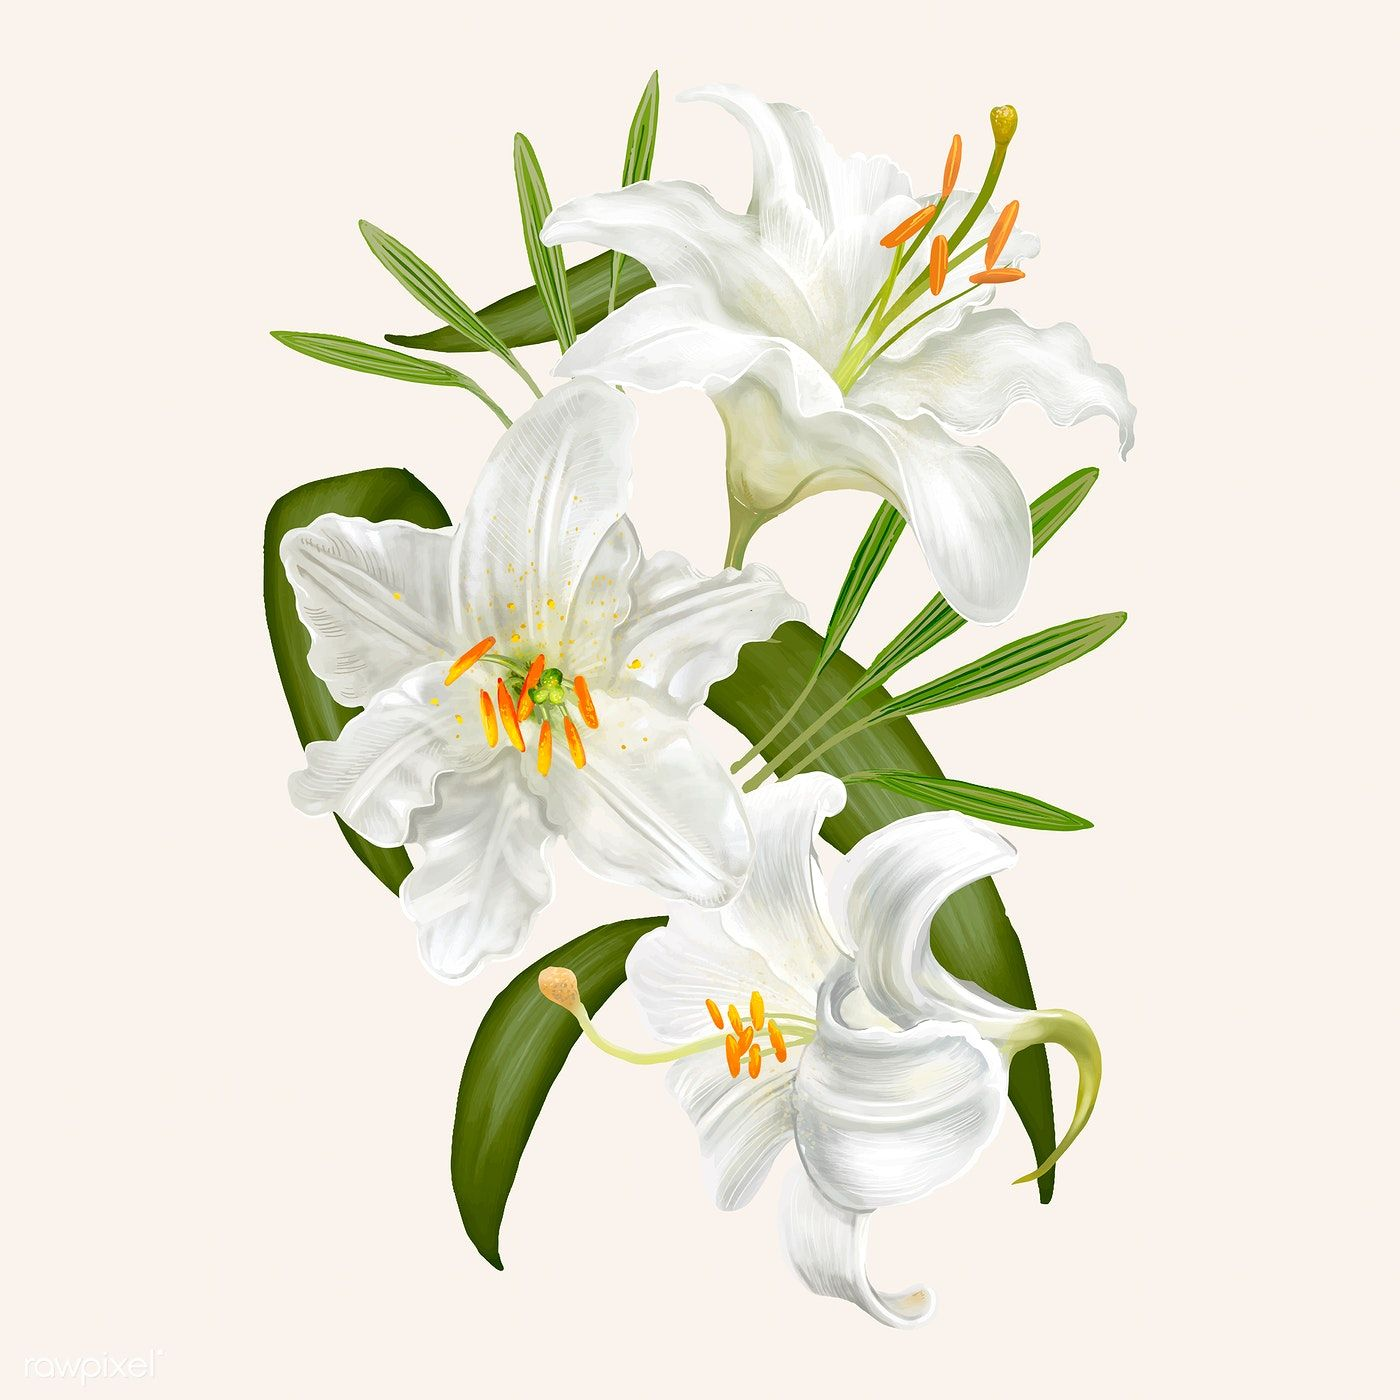 Download premium vector of Illustration drawing of Lily